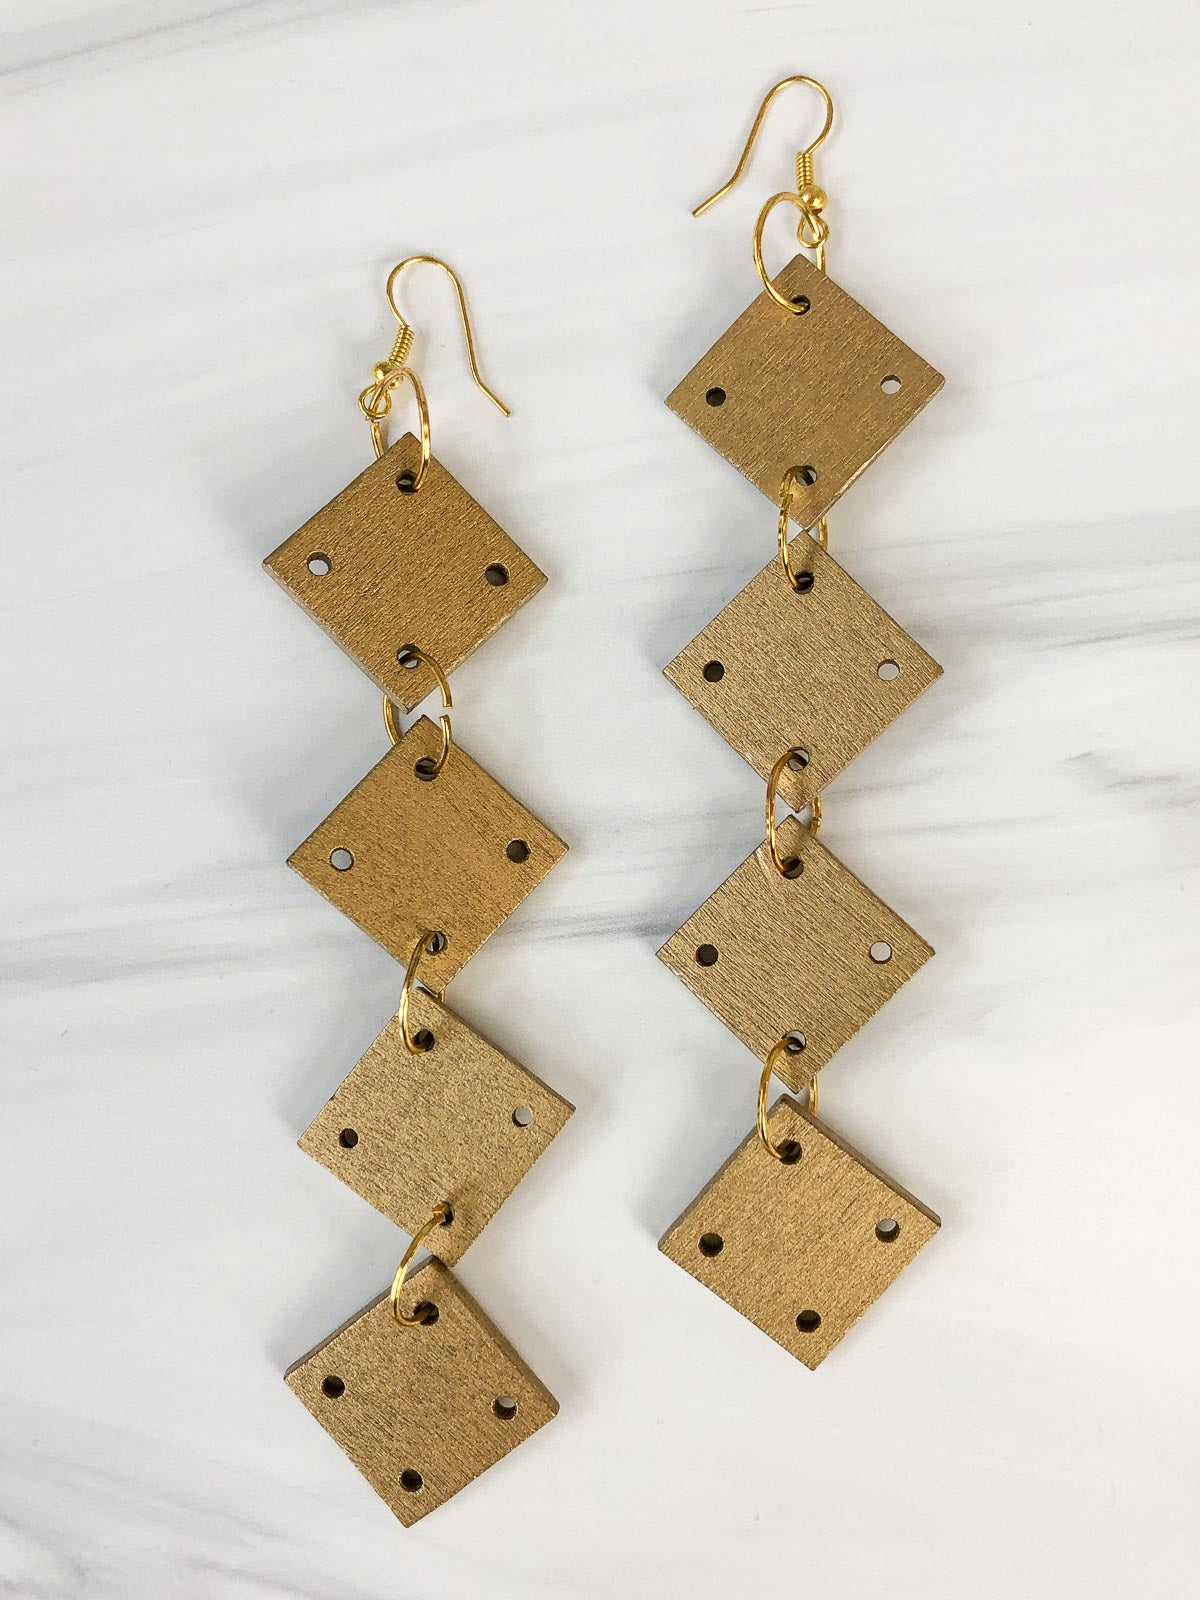 Jianhui London 4 Square Drop Earrings, Gold